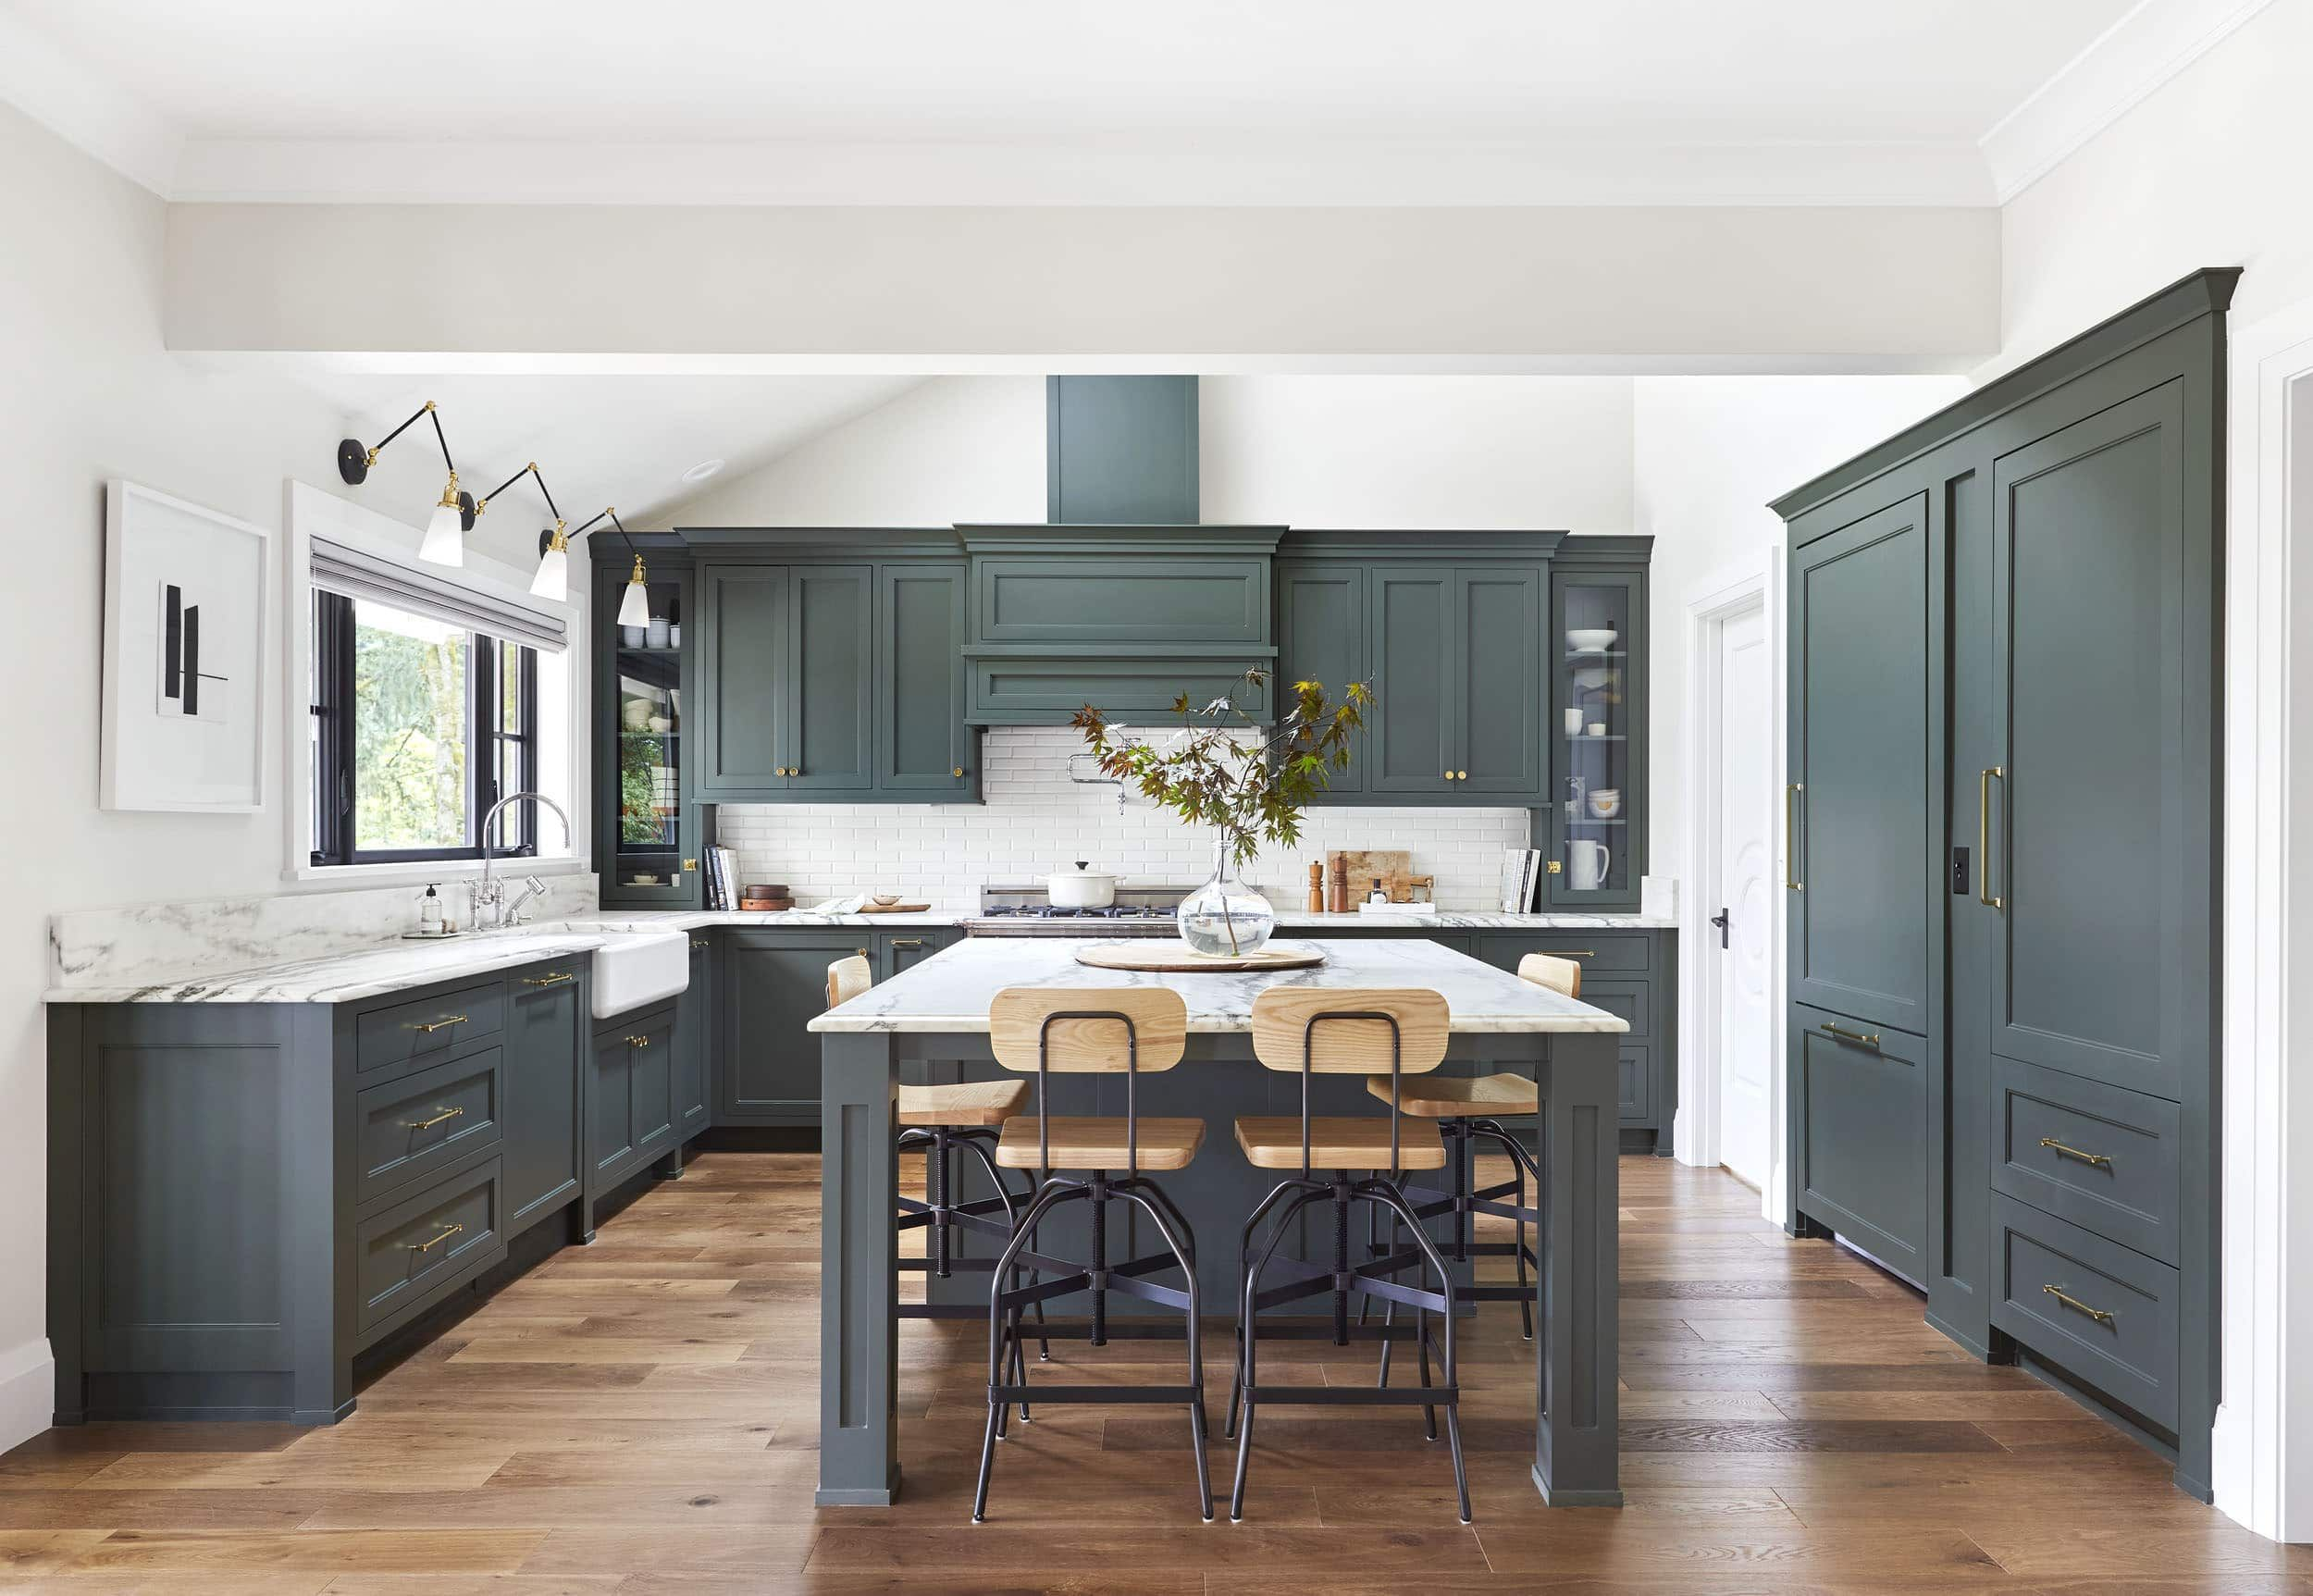 All The What S Why S How Much S Of The Portland Kitchen Big Reveal Emily Henderson Green Kitchen Designs Green Kitchen Cabinets Green Kitchen